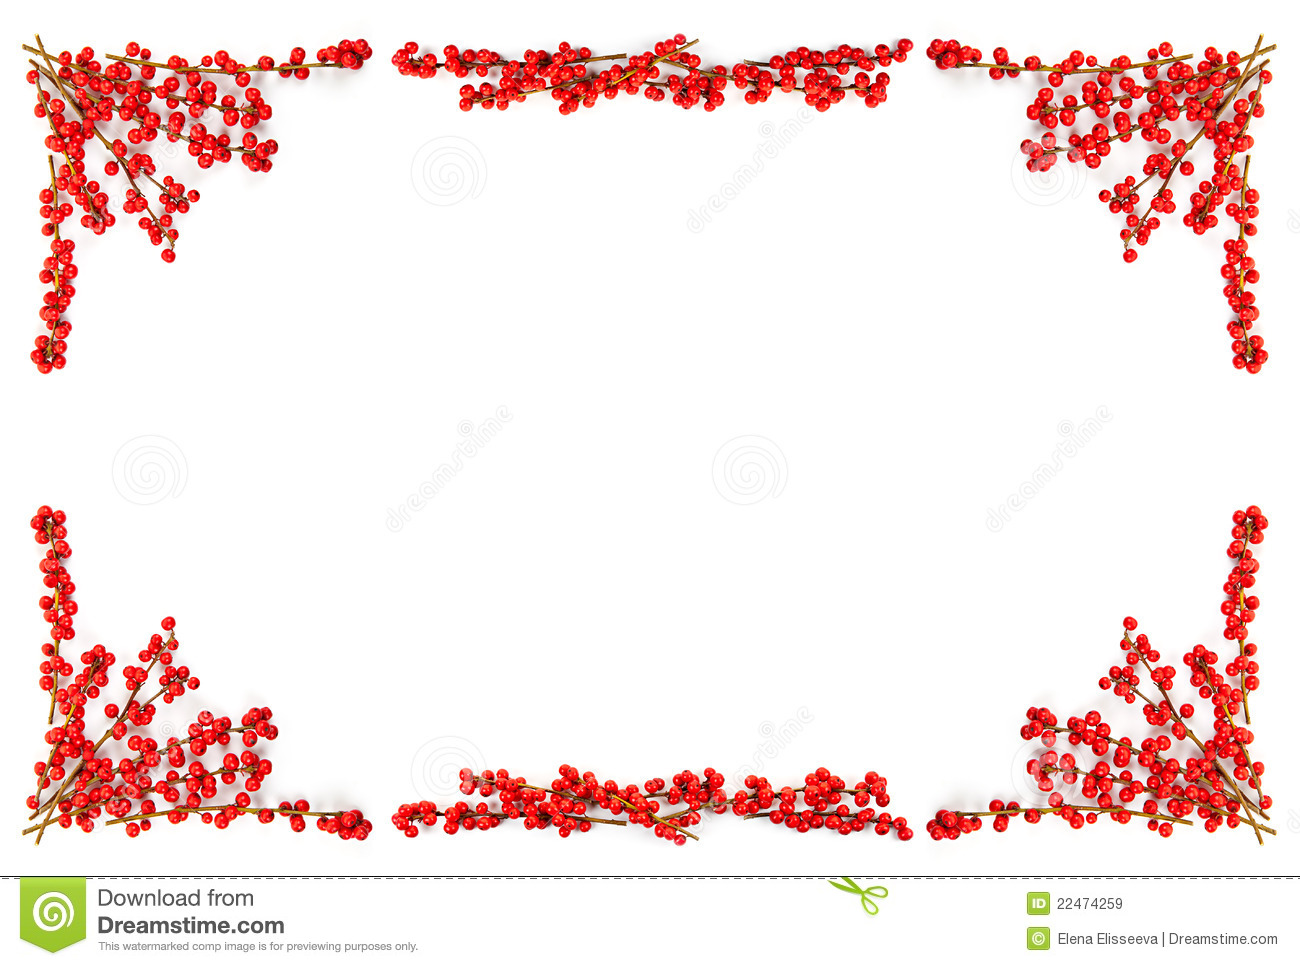 christmas-border-red-berries-22474259 Red Berries For Christmas Decorations